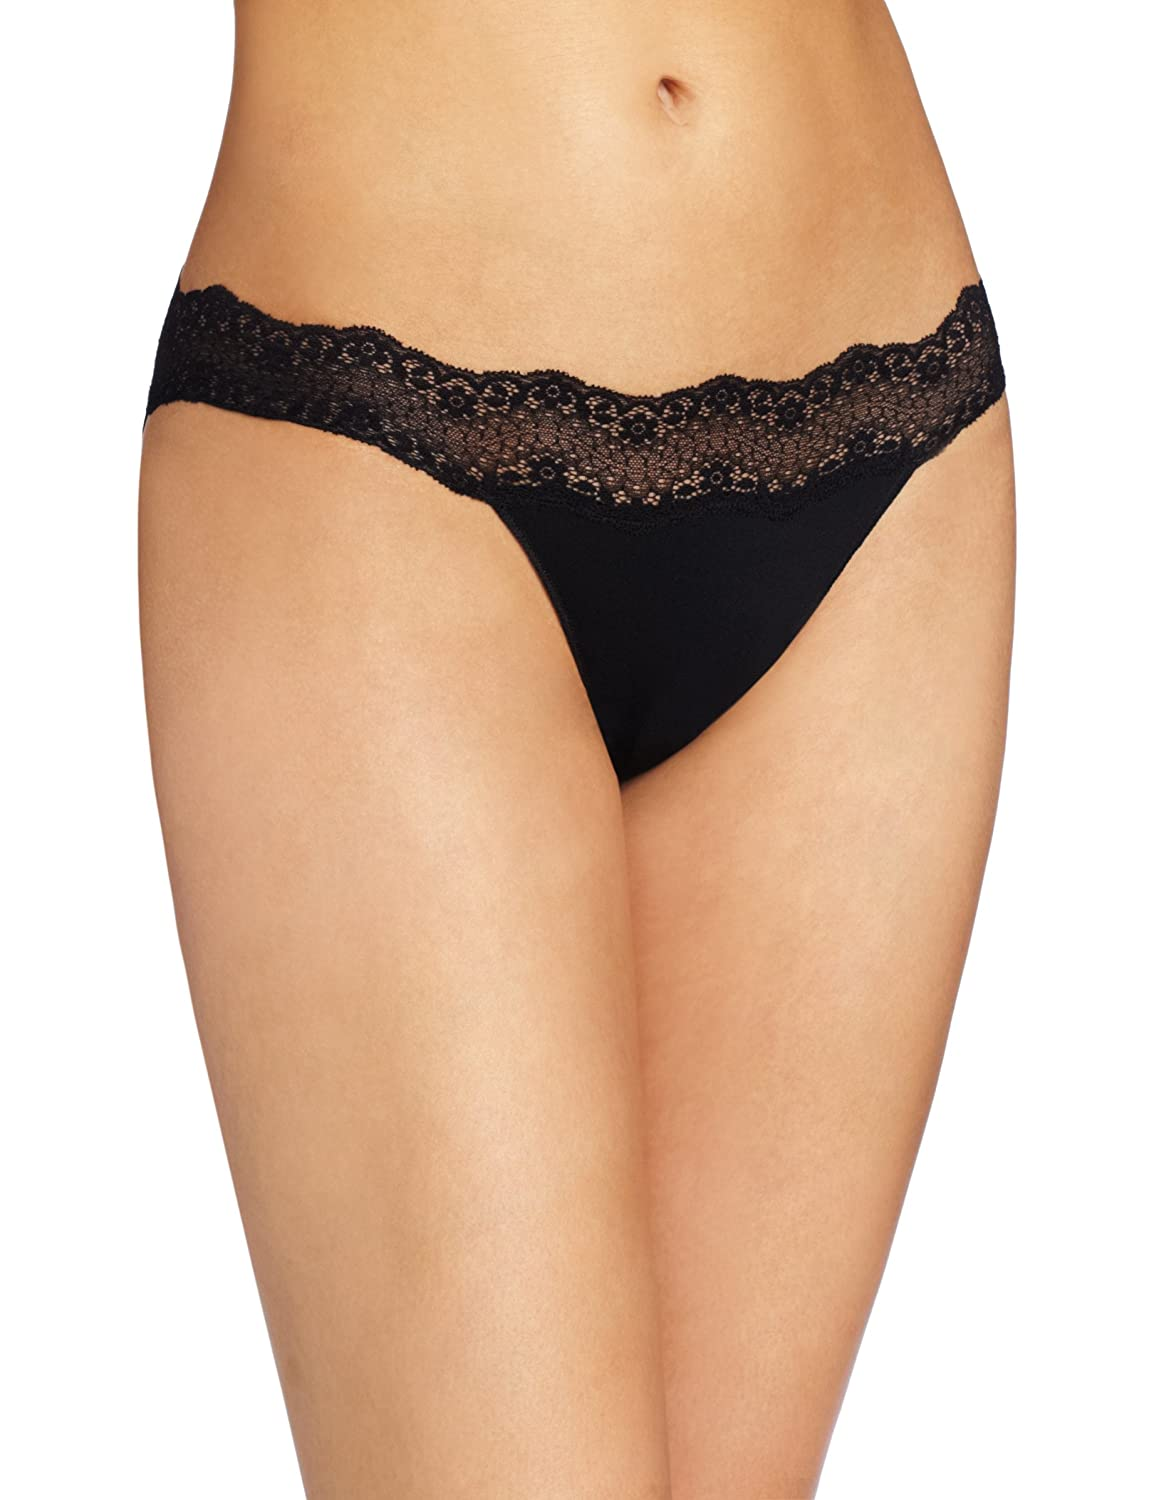 Le Mystere Women's Perfect Pair Bikini Panty Le Mystere Women' s IA 2361-633